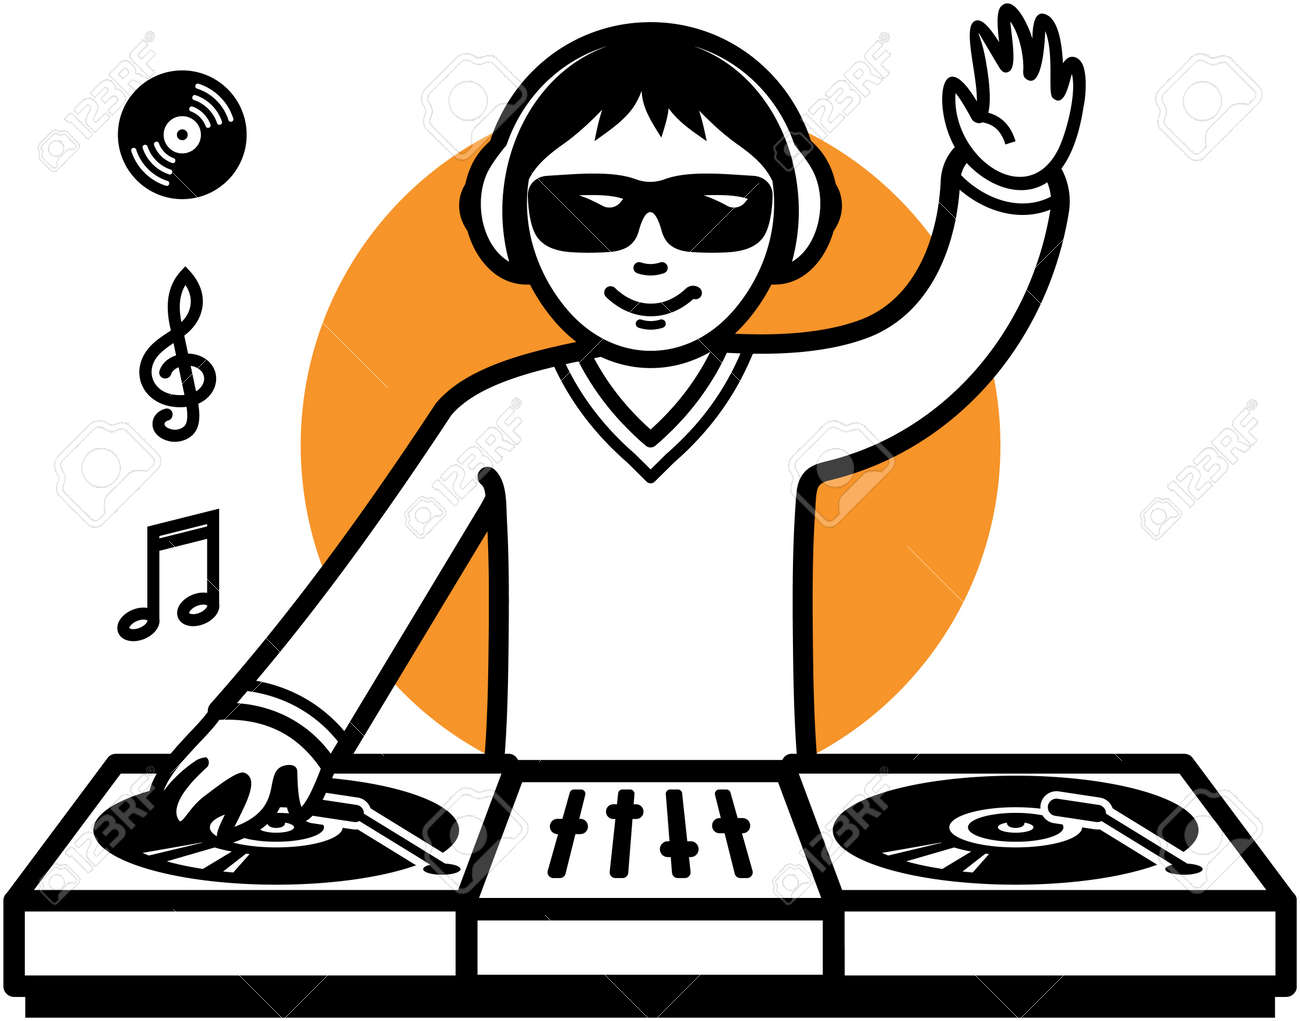 party dj at turntable illustration royalty free cliparts vectors rh 123rf com dj clip art pictures dj clipart png